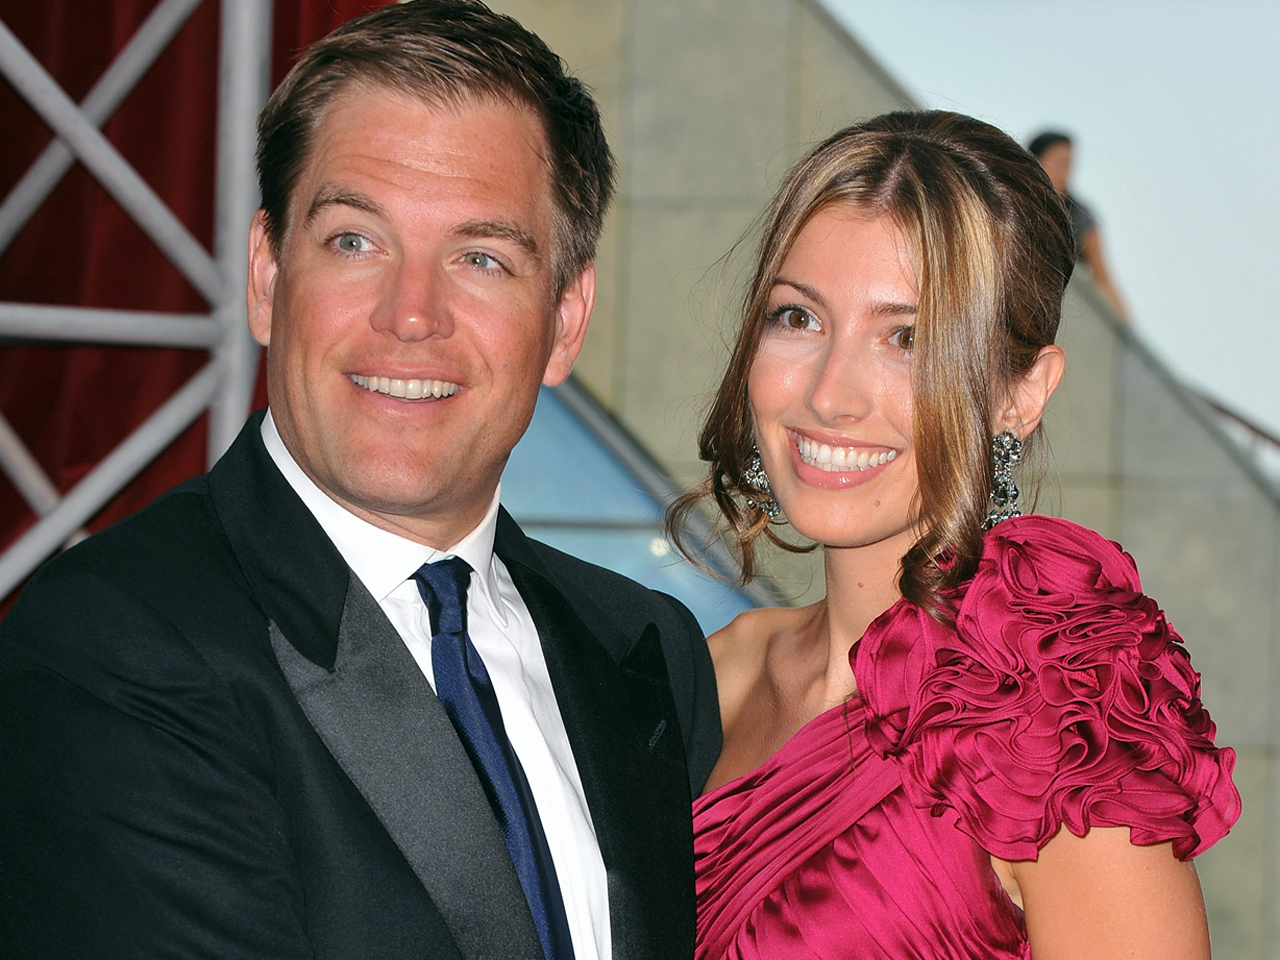 'NCIS' star Michael Weatherly and wife expecting second ...